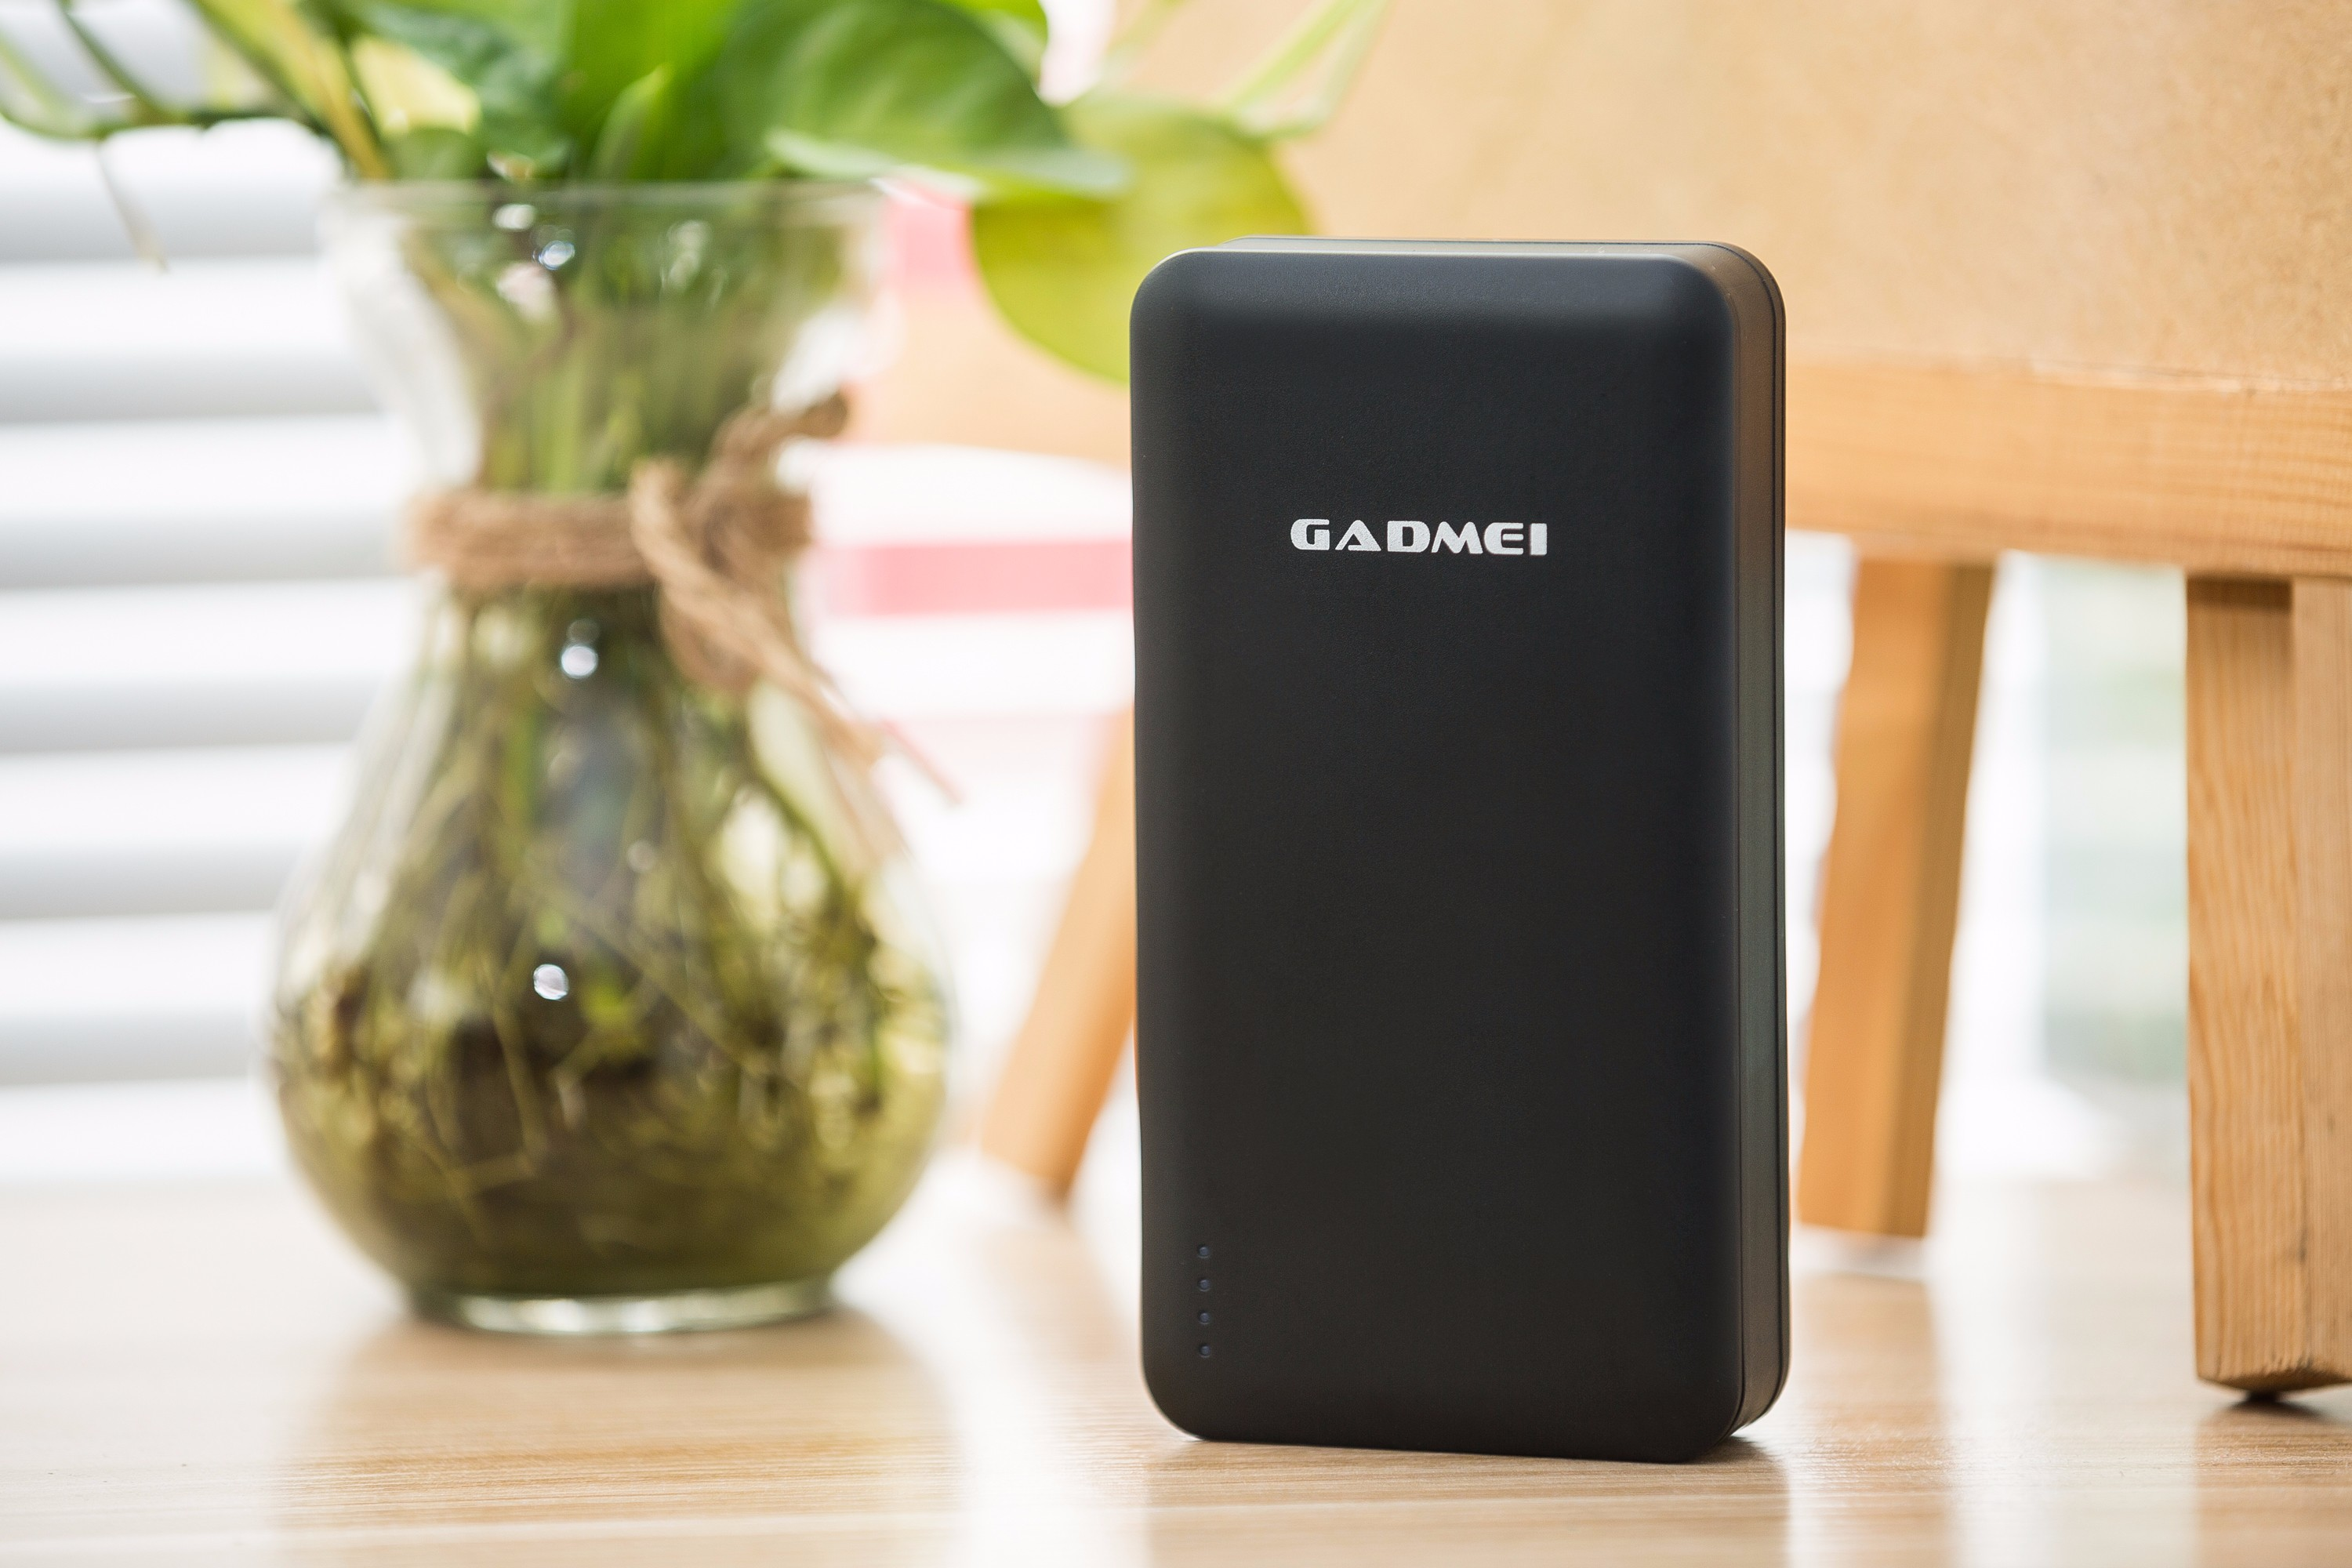 Gadmei│Power bank│Data cable│Mobile Accessories